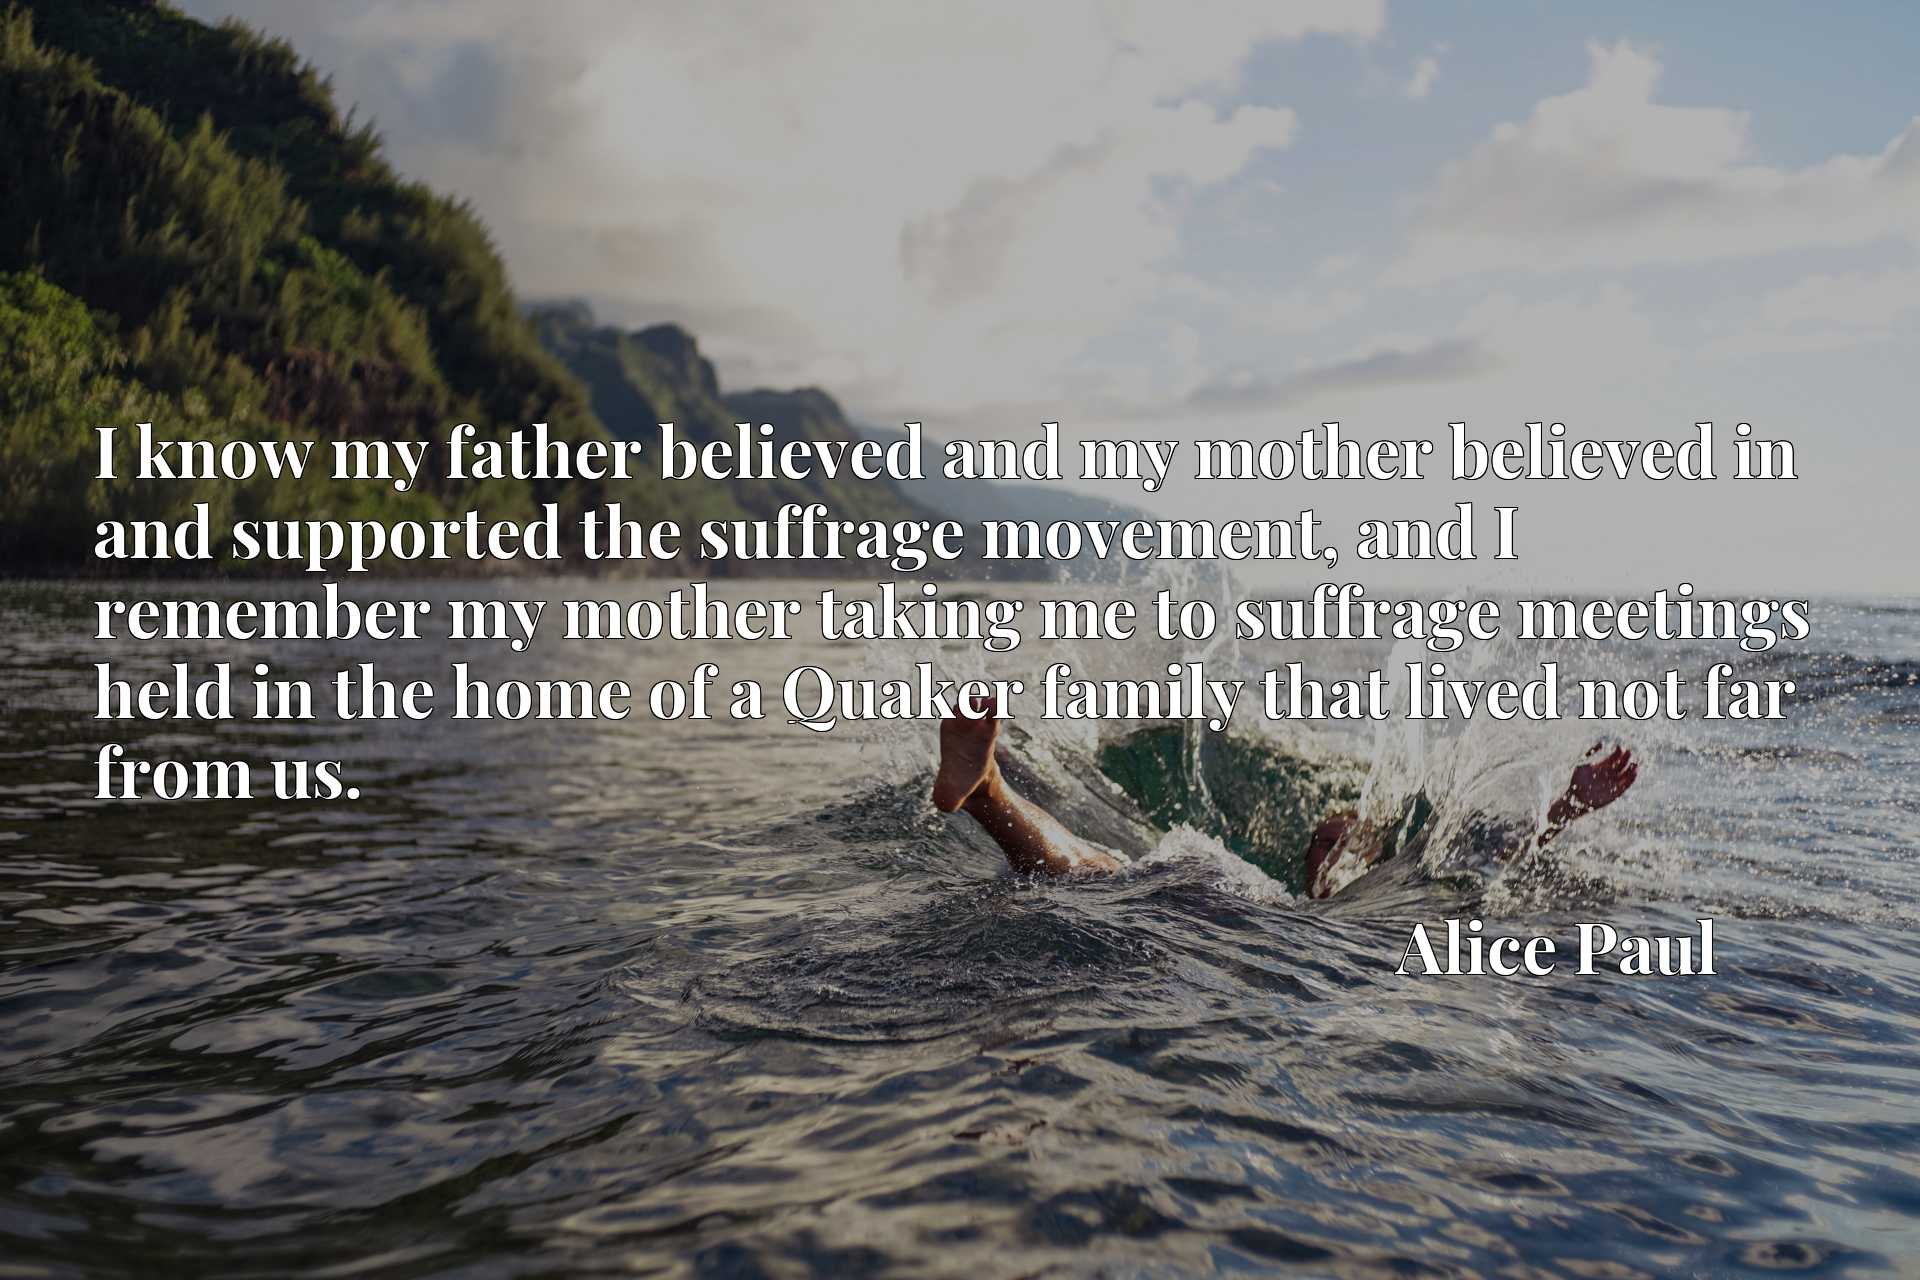 I know my father believed and my mother believed in and supported the suffrage movement, and I remember my mother taking me to suffrage meetings held in the home of a Quaker family that lived not far from us.